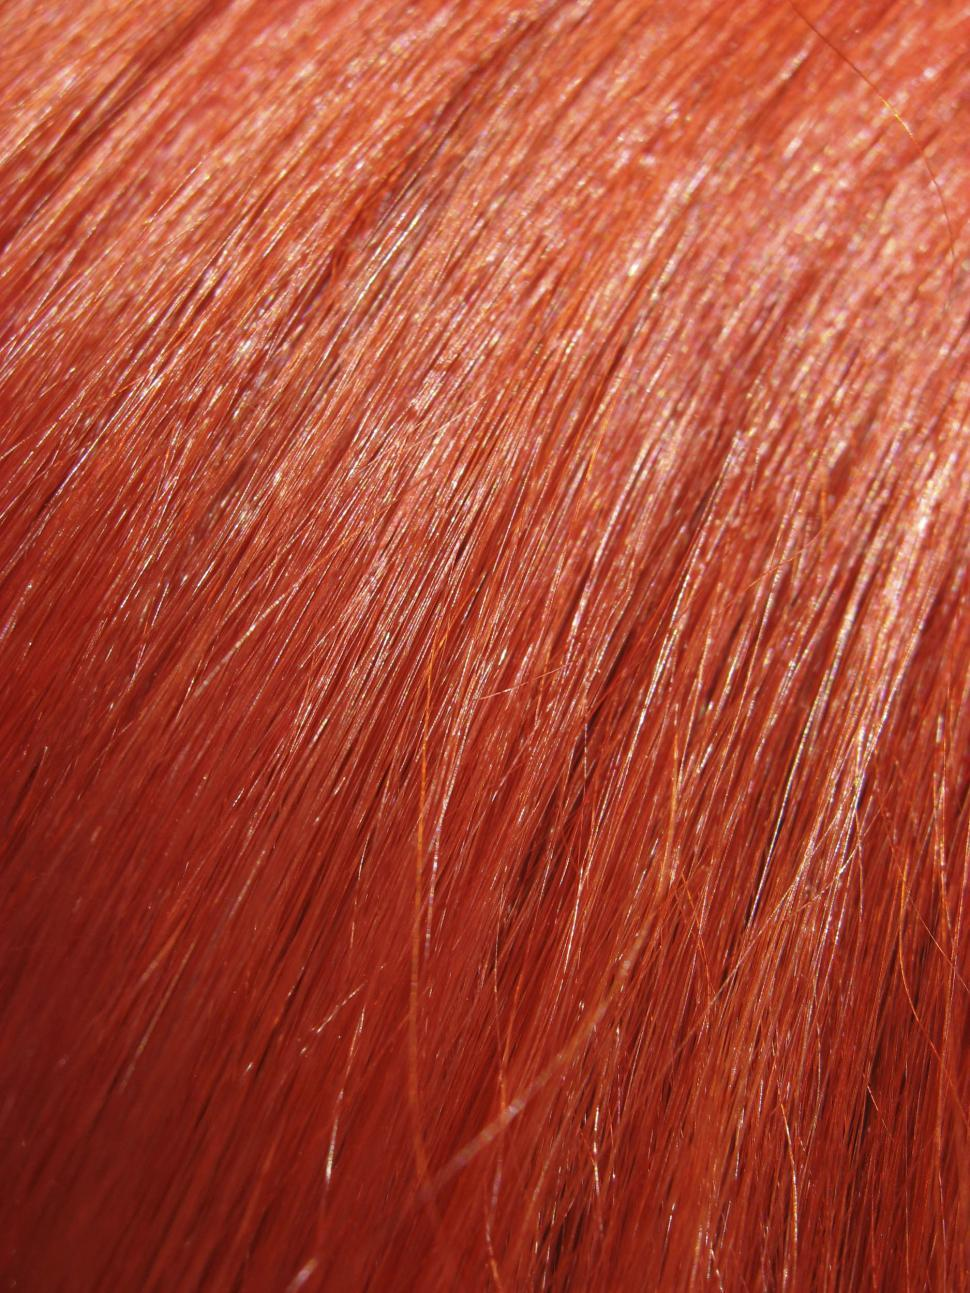 Download Free Stock Photo of red hair